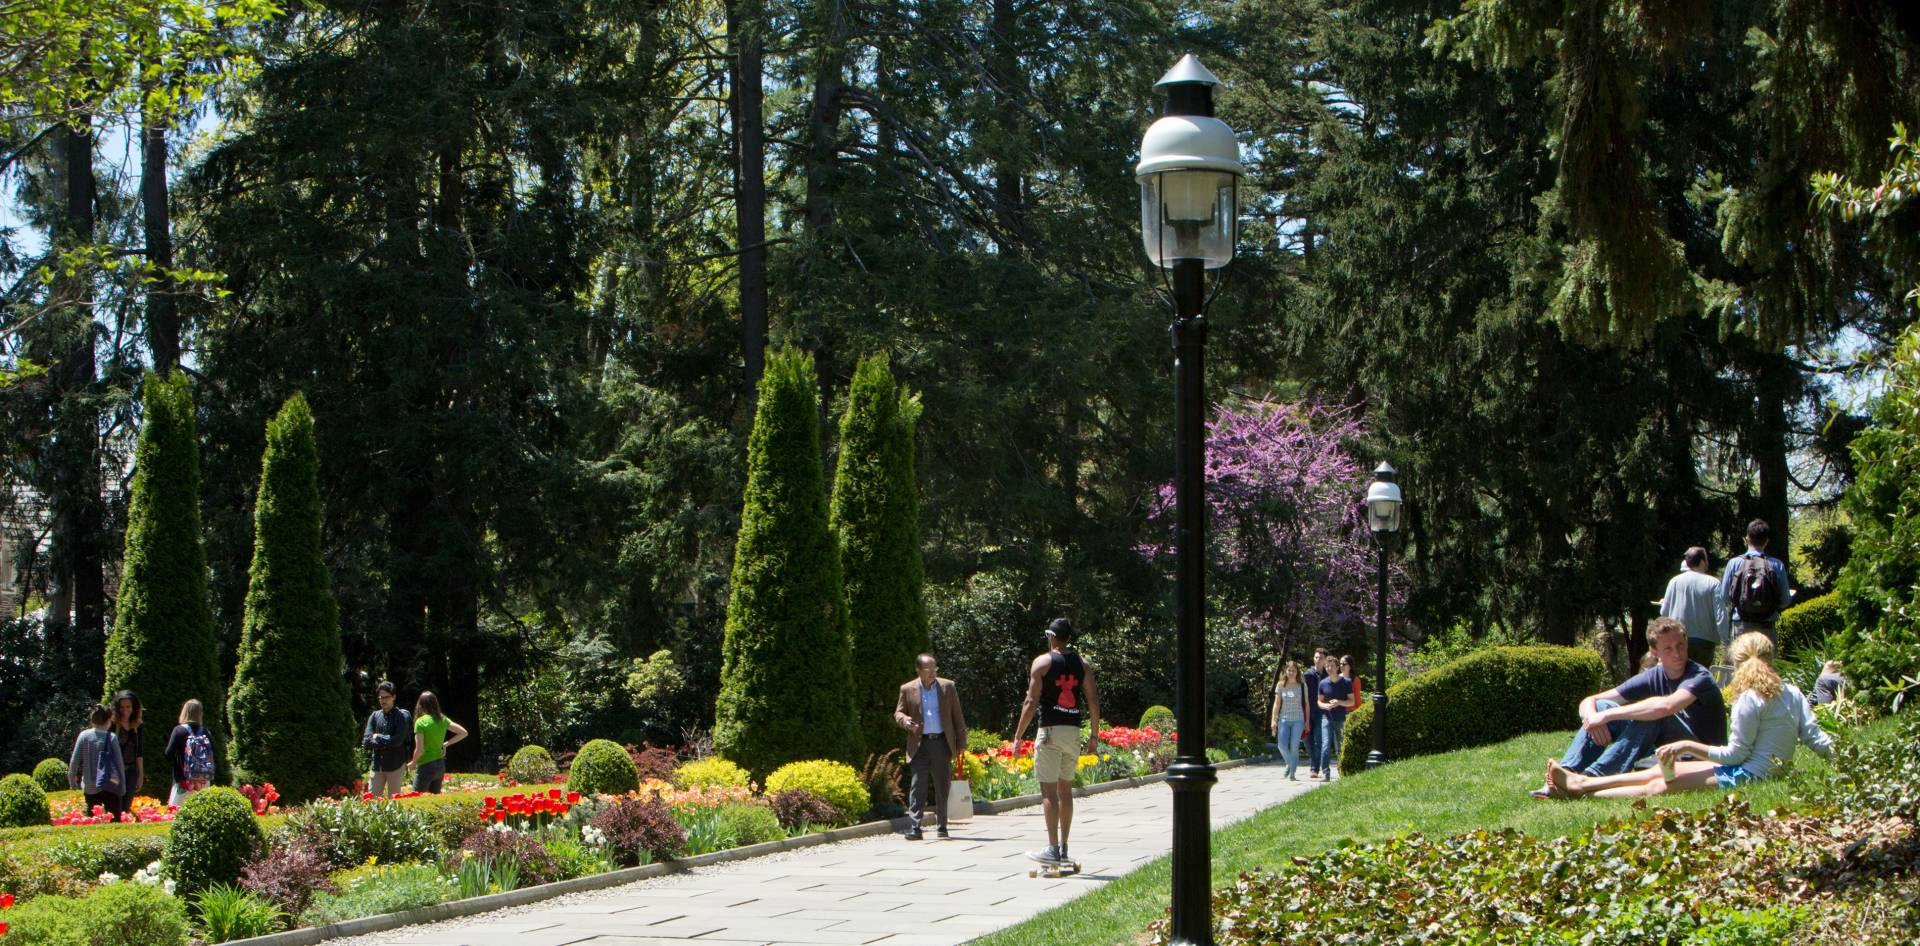 People walk through Prospect House Gardens